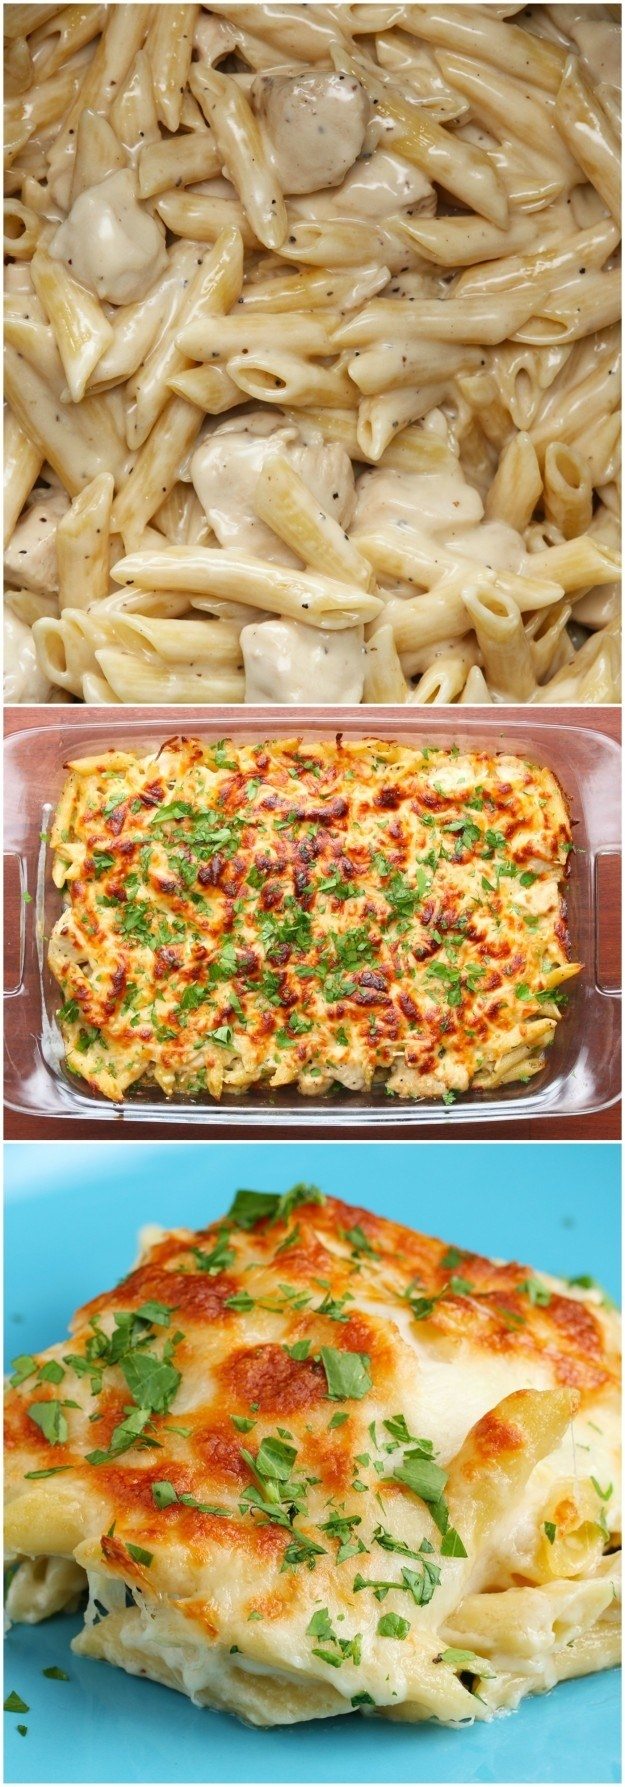 15 Comforting And Tasty Pasta Bake Recipes To Snuggle Up To